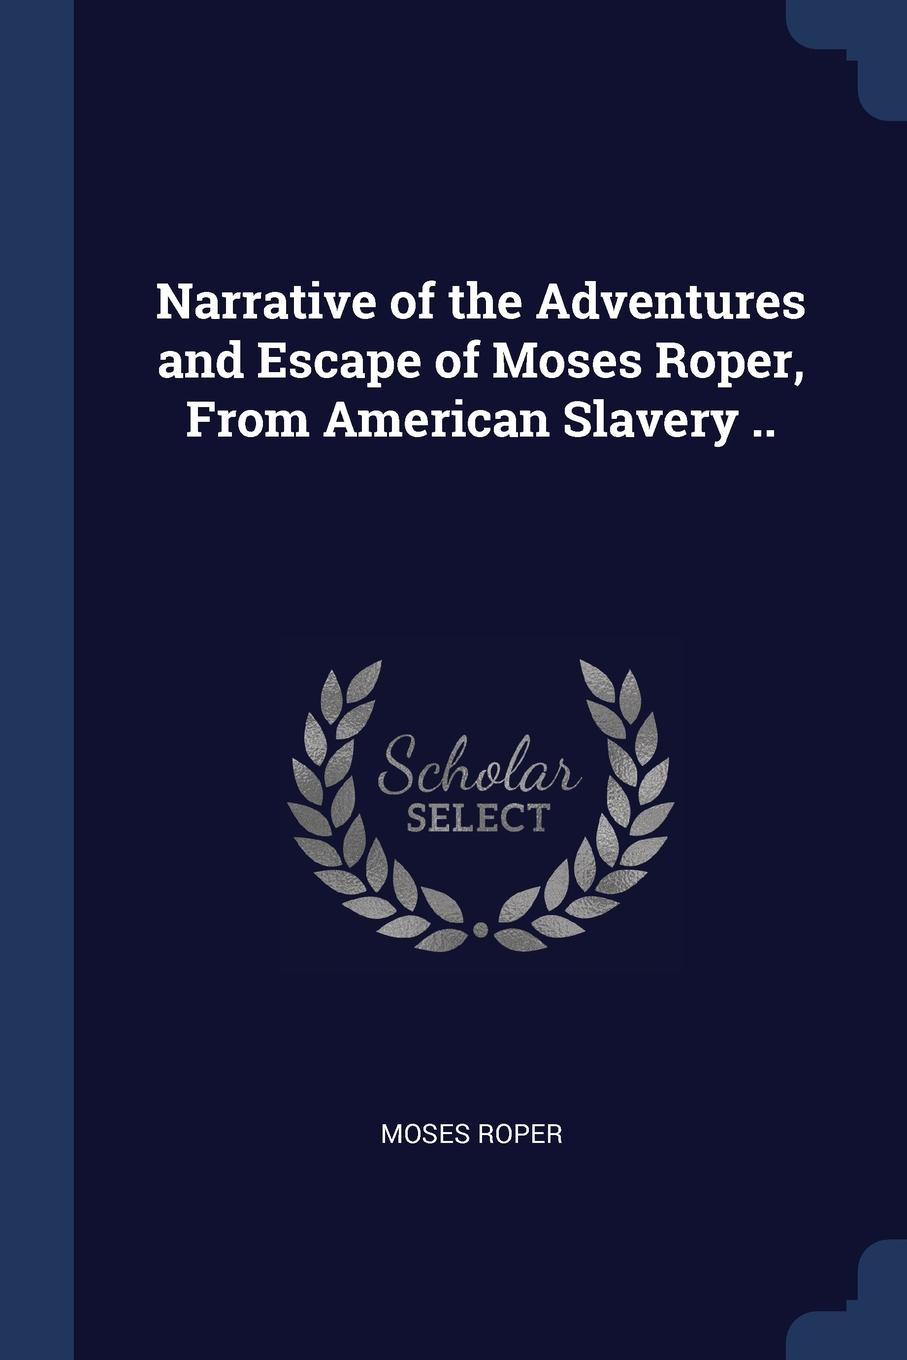 Narrative of the Adventures and Escape of Moses Roper, From American Slavery ... Moses Roper